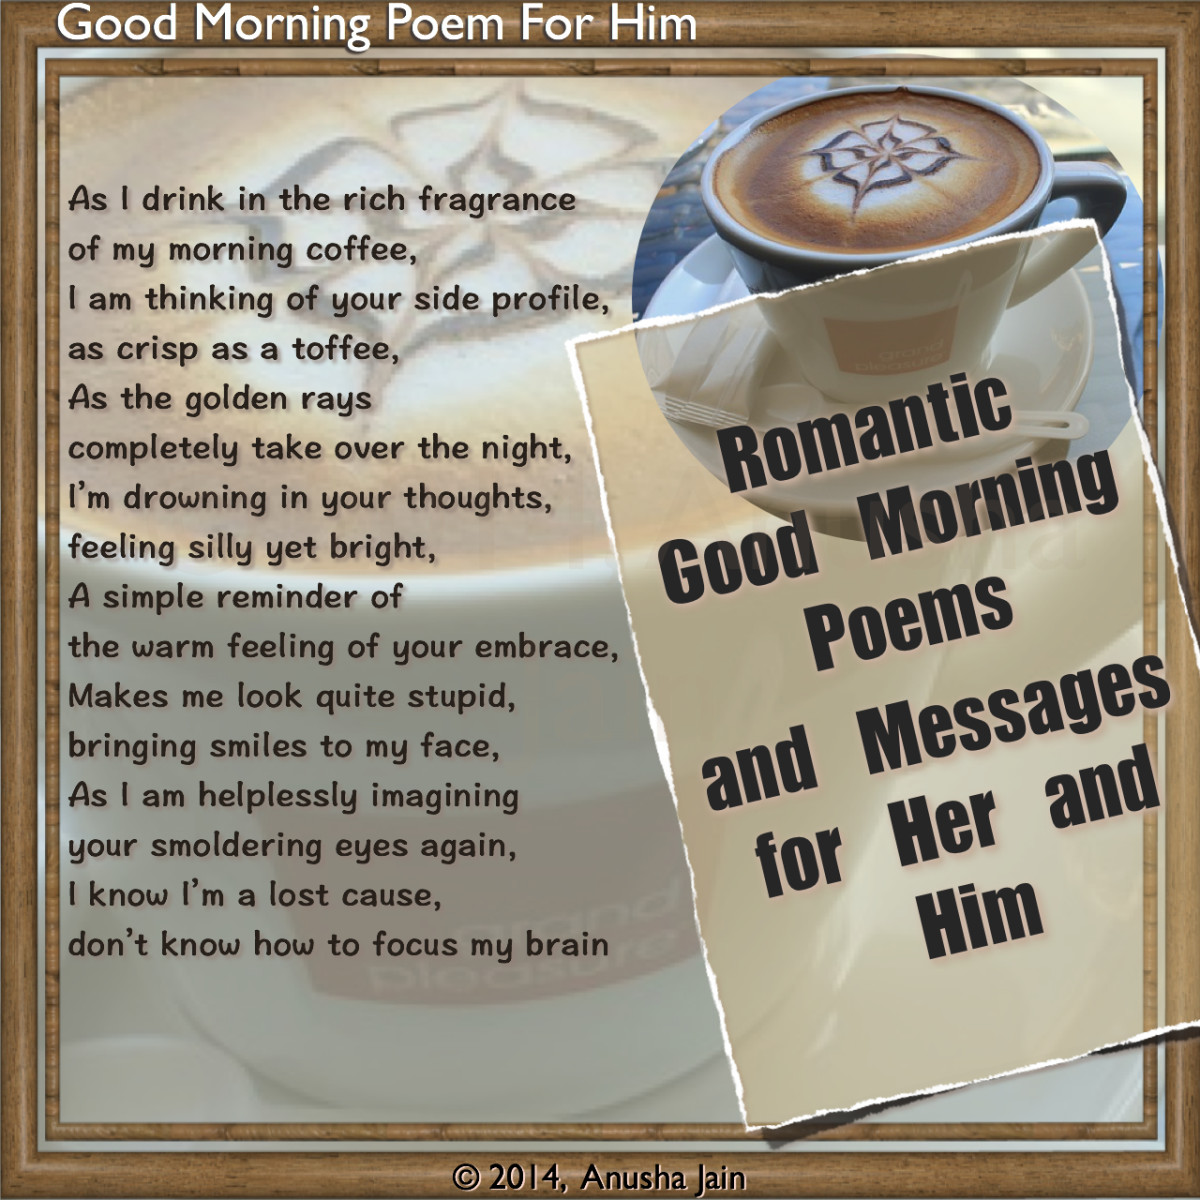 Good Morning Poems For Him Good morning coffee poem